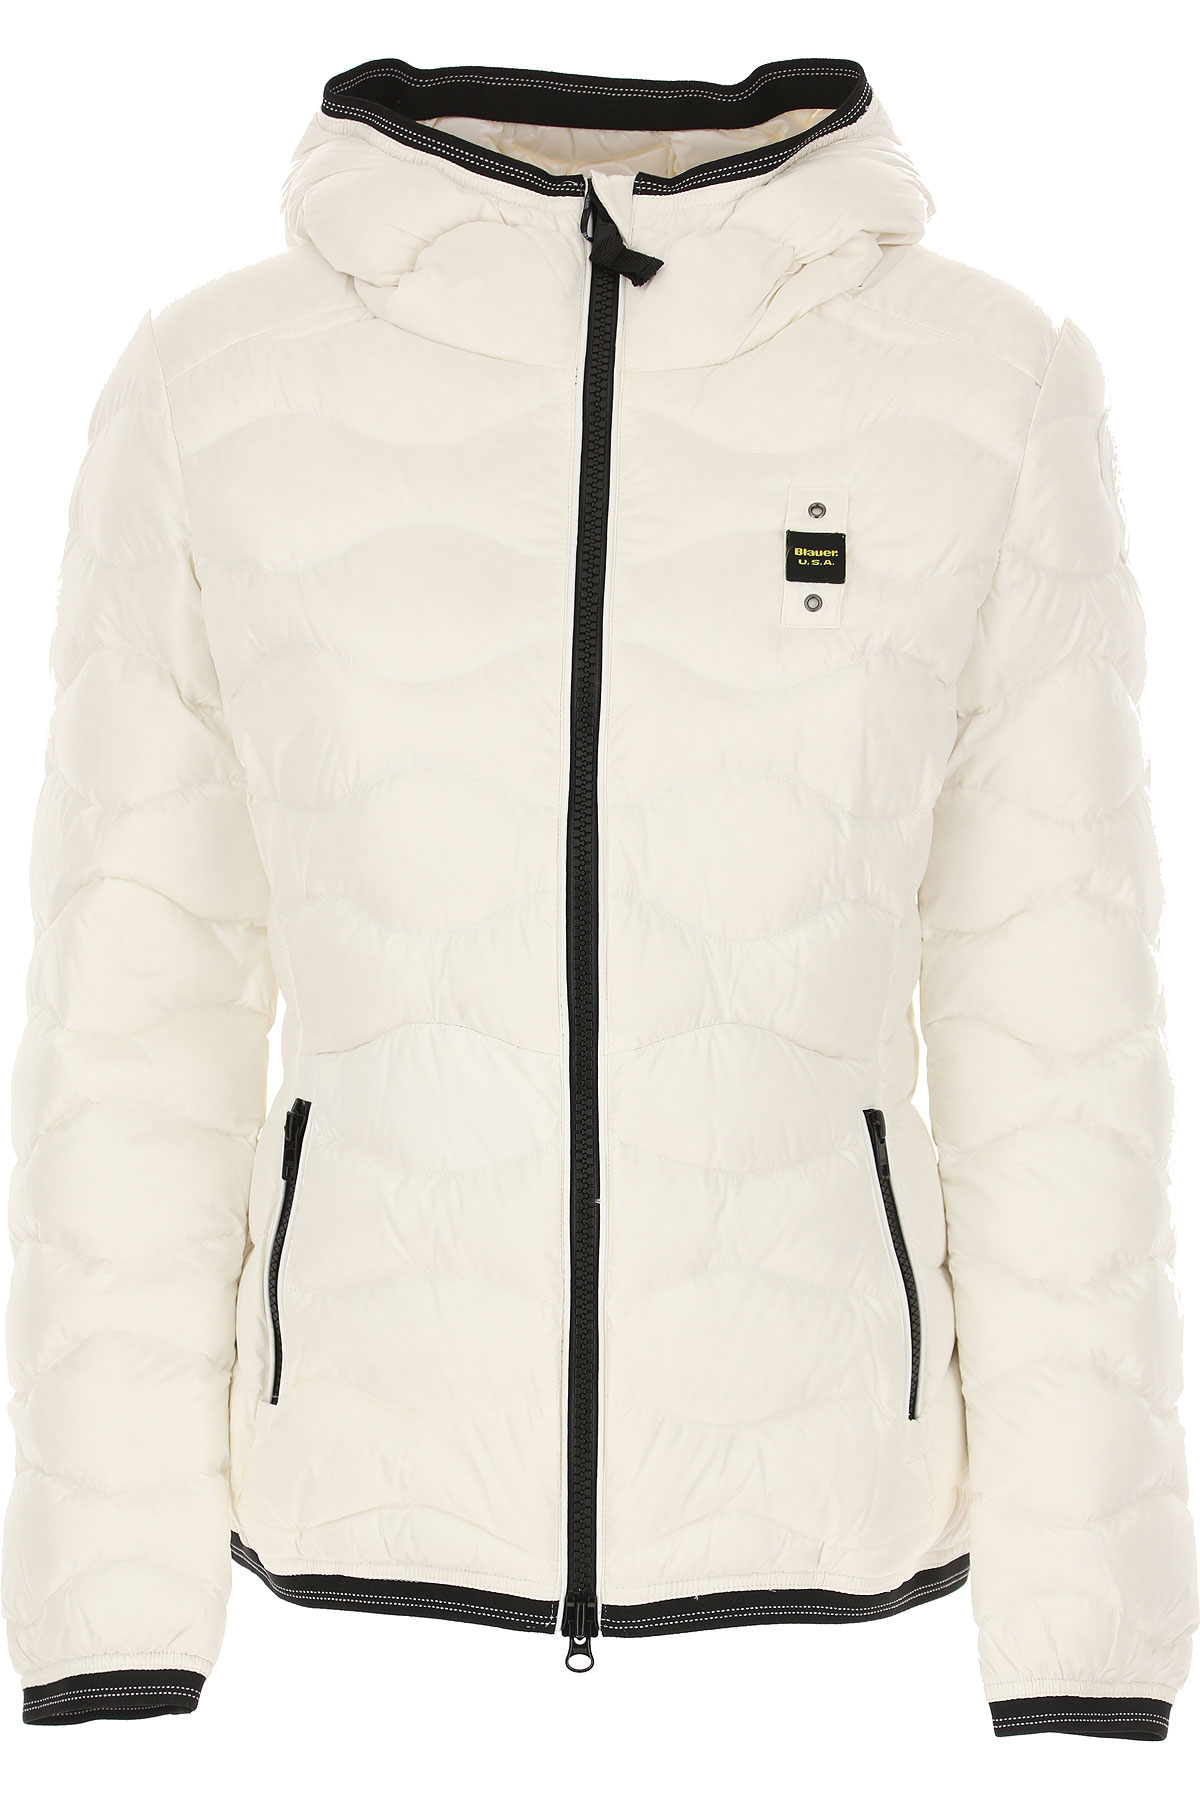 Blauer Down Jacket for Women, Puffer Ski Jacket On Sale, White, polyester, 2019, 4 6